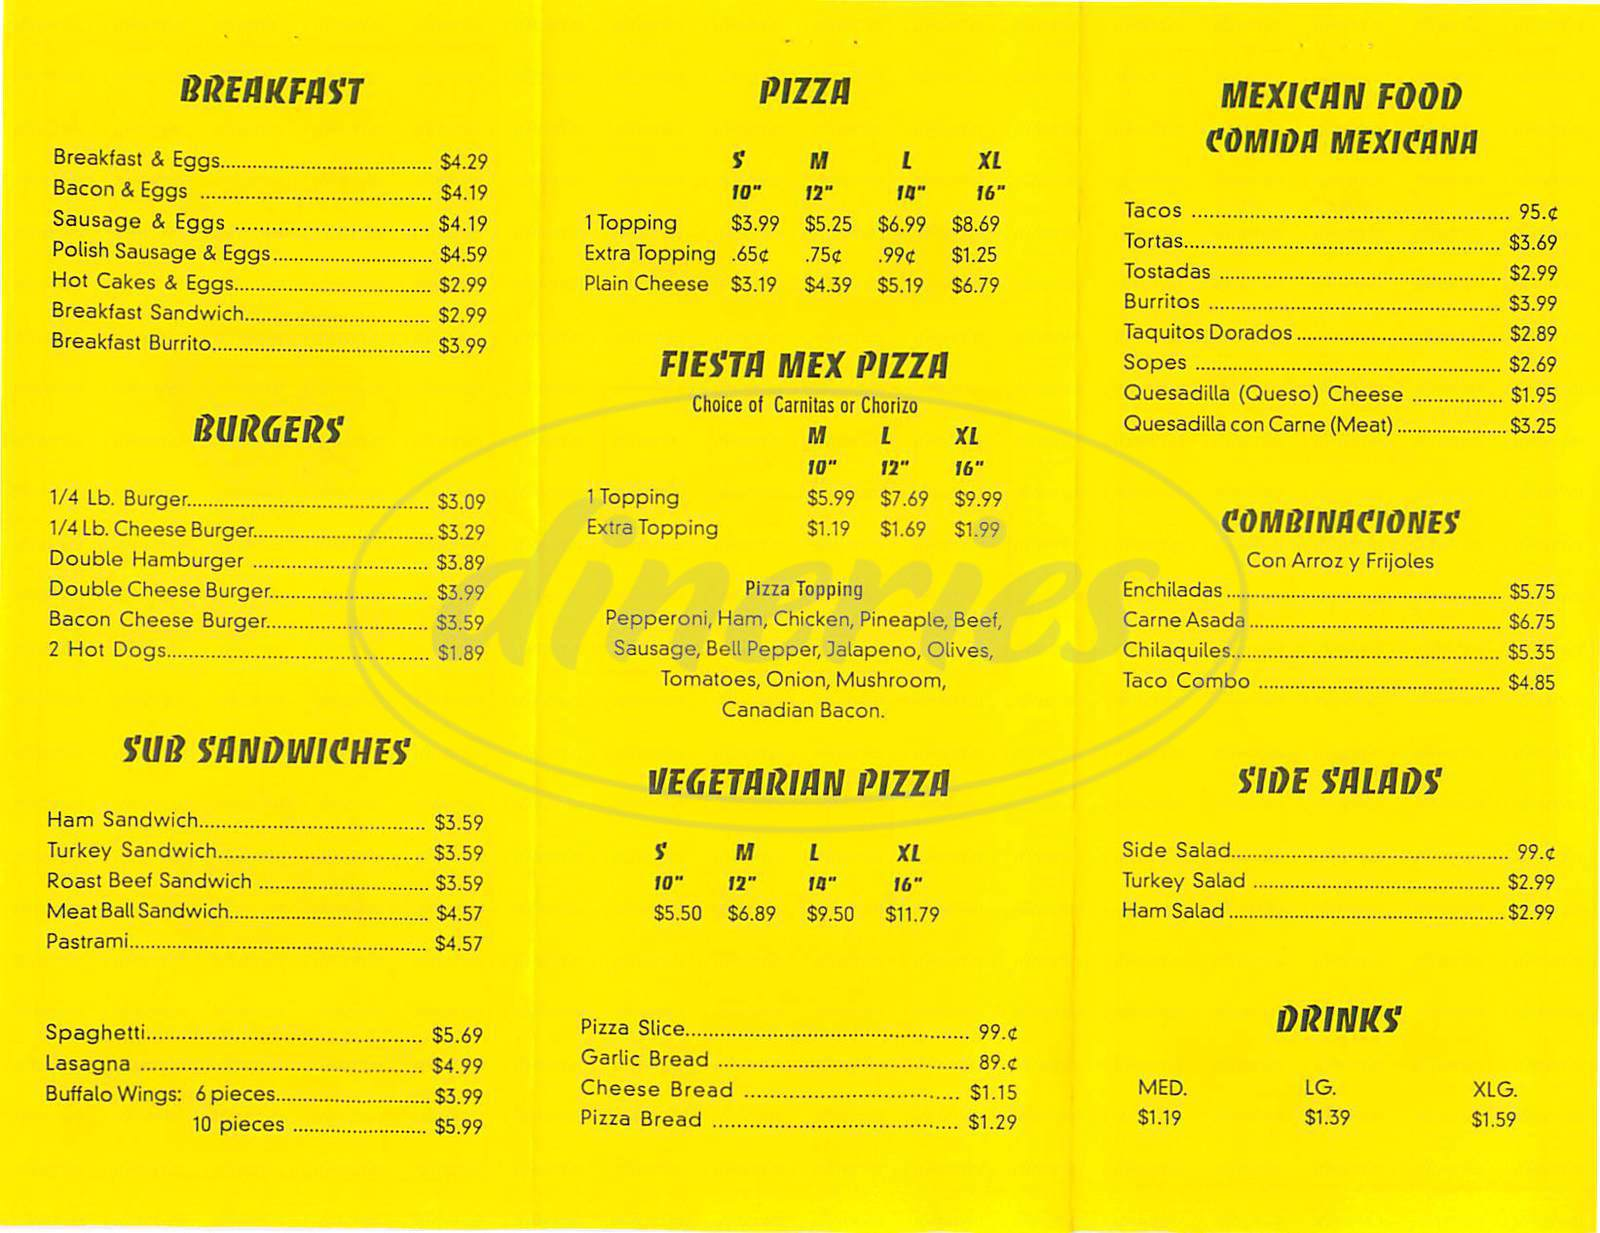 menu for Fiesta Place Pizza